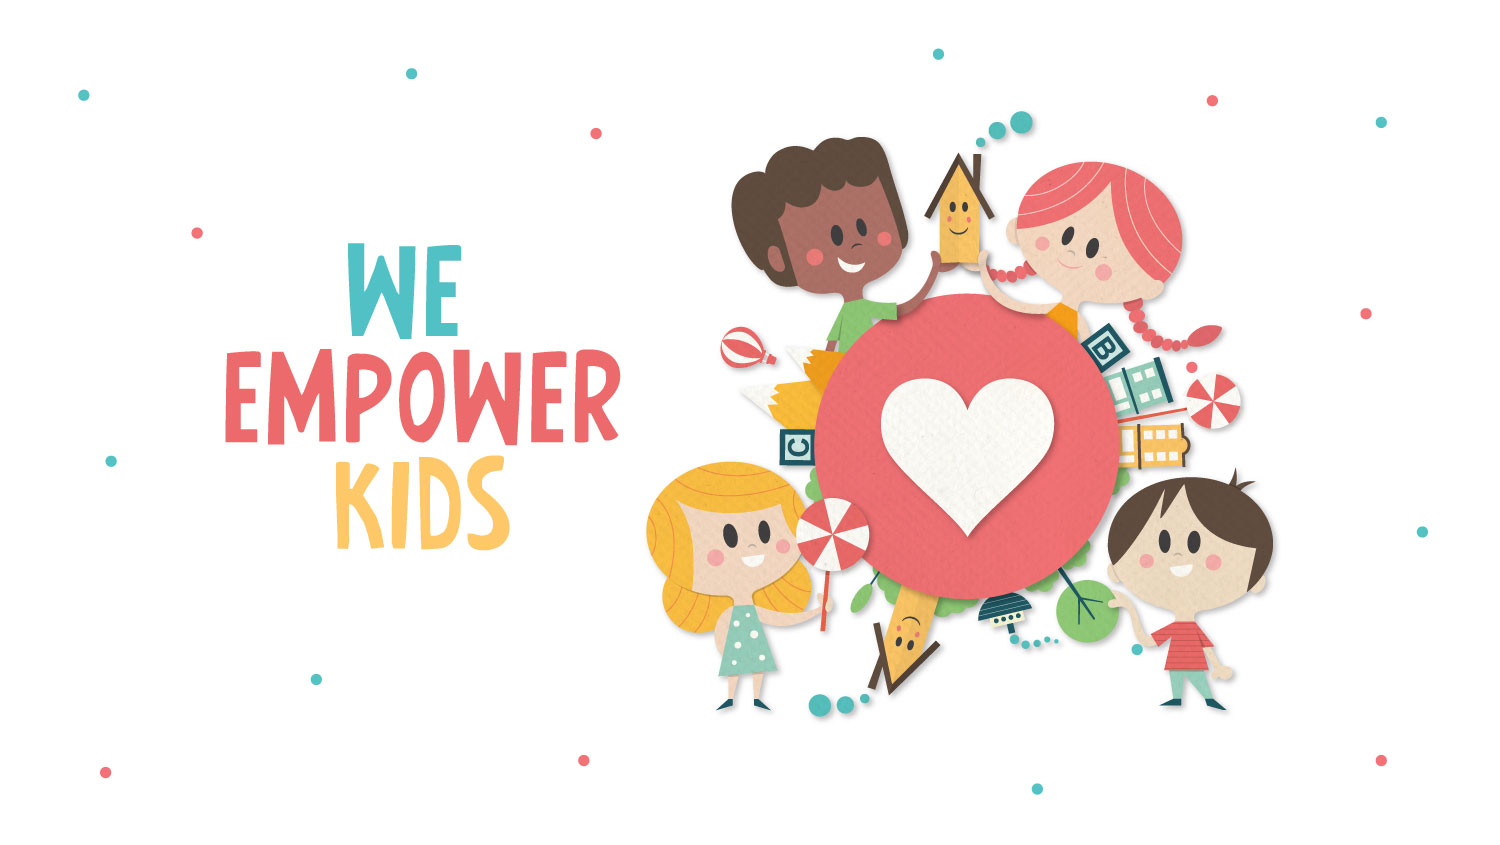 wap-we-empower-kids.jpg